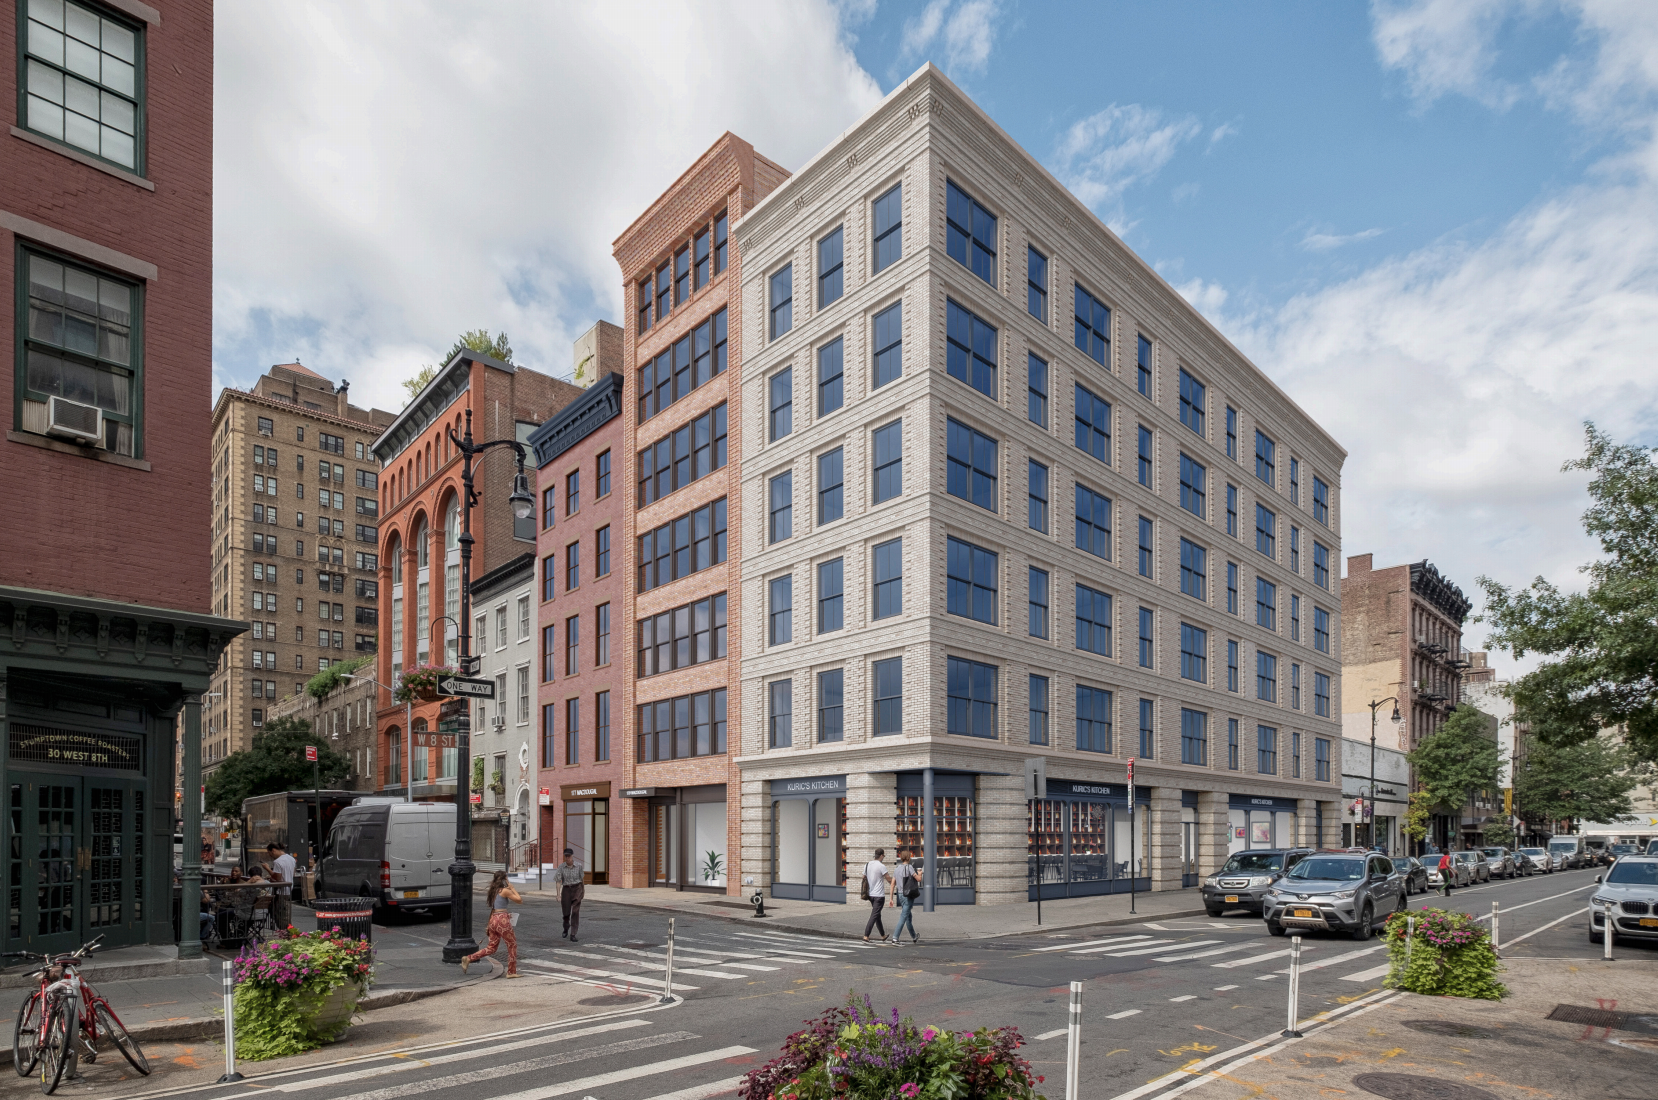 In Greenwich Village, new residential buildings to replace low-rise storefronts